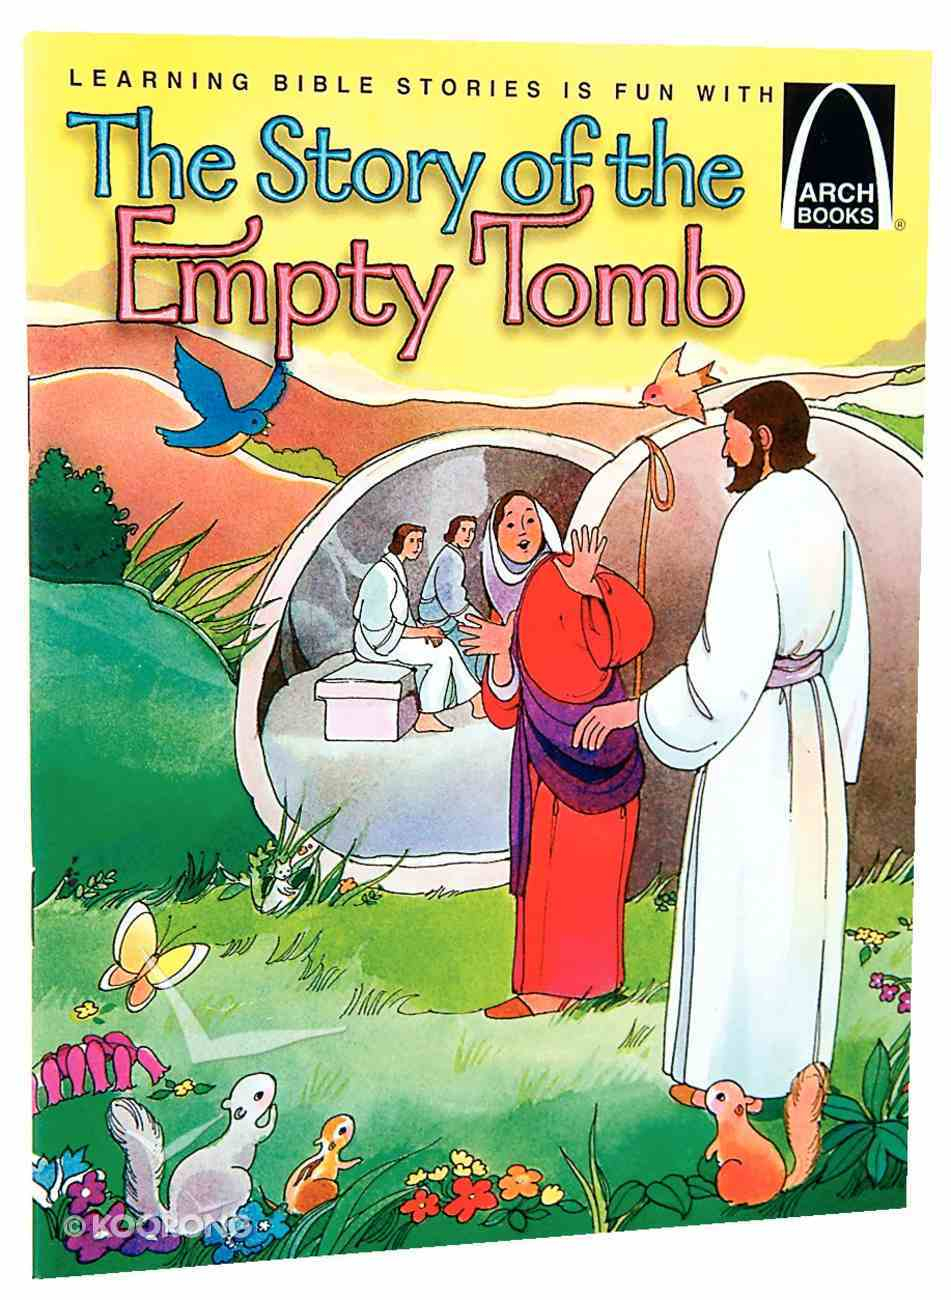 The Story of the Empty Tomb (Arch Books Series) Paperback